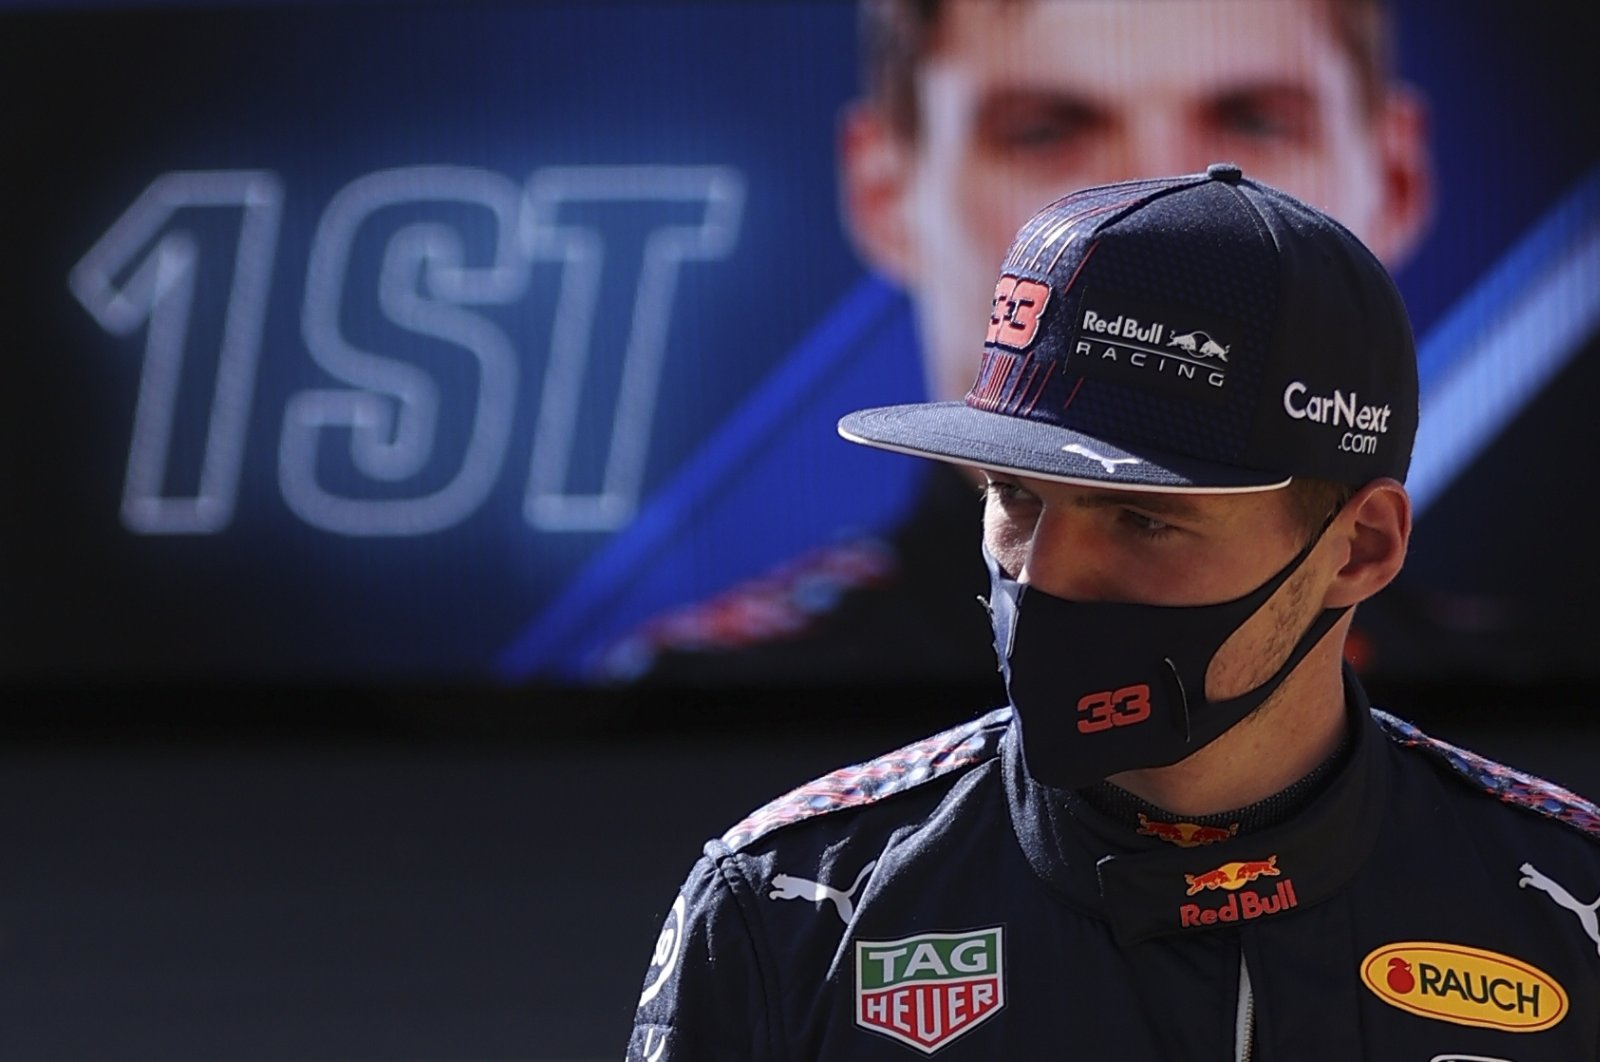 Red Bull's Dutch driver Max Verstappen reacts after taking the first position during the sprint qualifying session of the Formula One British Grand Prix at the Silverstone Circuit, Silverstone, central England, July 17, 2021. (EPA Photo)